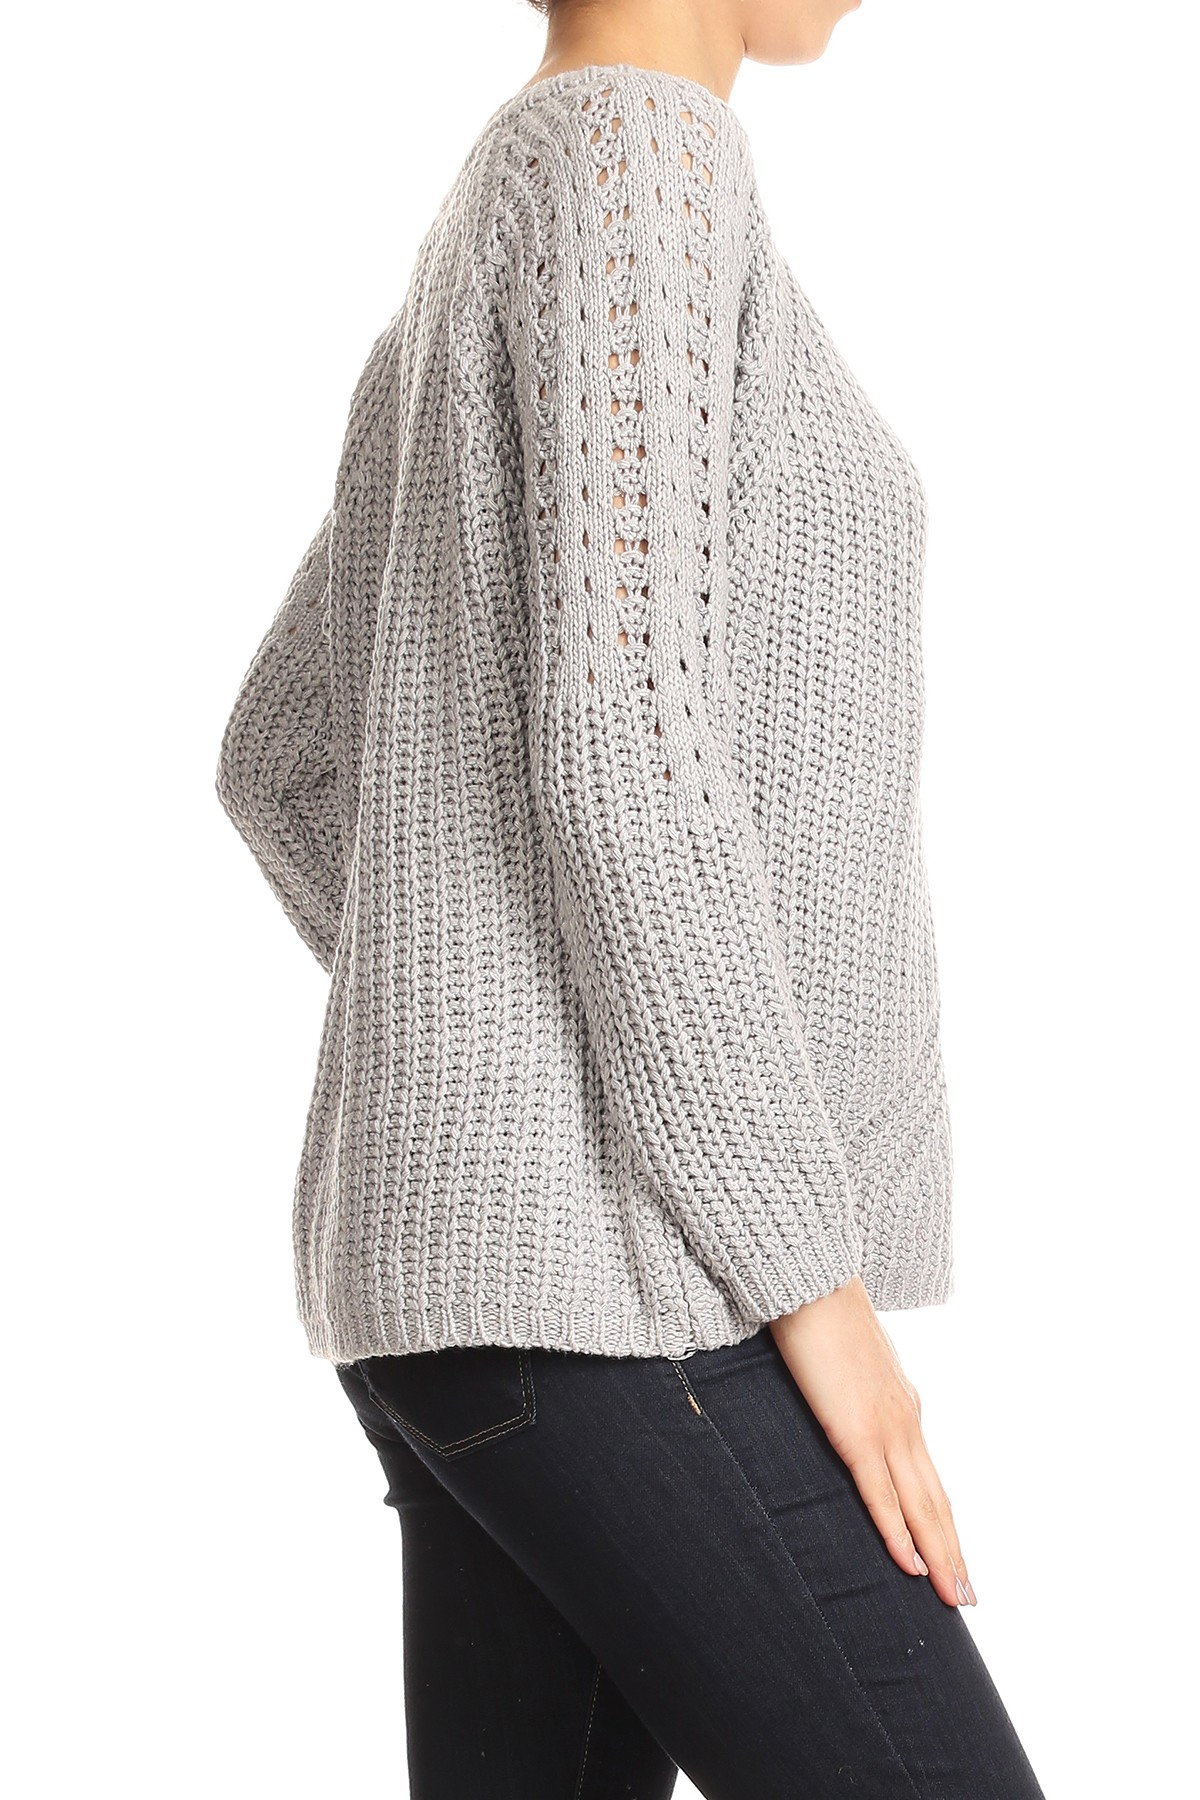 Searching for latest Sweaters and Cardigans, Oversized Sweaters, Long Sweaters, Long Cardigans, Black Sweaters and all online? atrociouslf.gq provides new arrival Sweaters and Cardigans with cheap price. Free shipping worldwide. English Skew Neck Long Sleeve Pullover Knit Sweater (17% OFF) Priority Dispatch. Priority Dispatch.